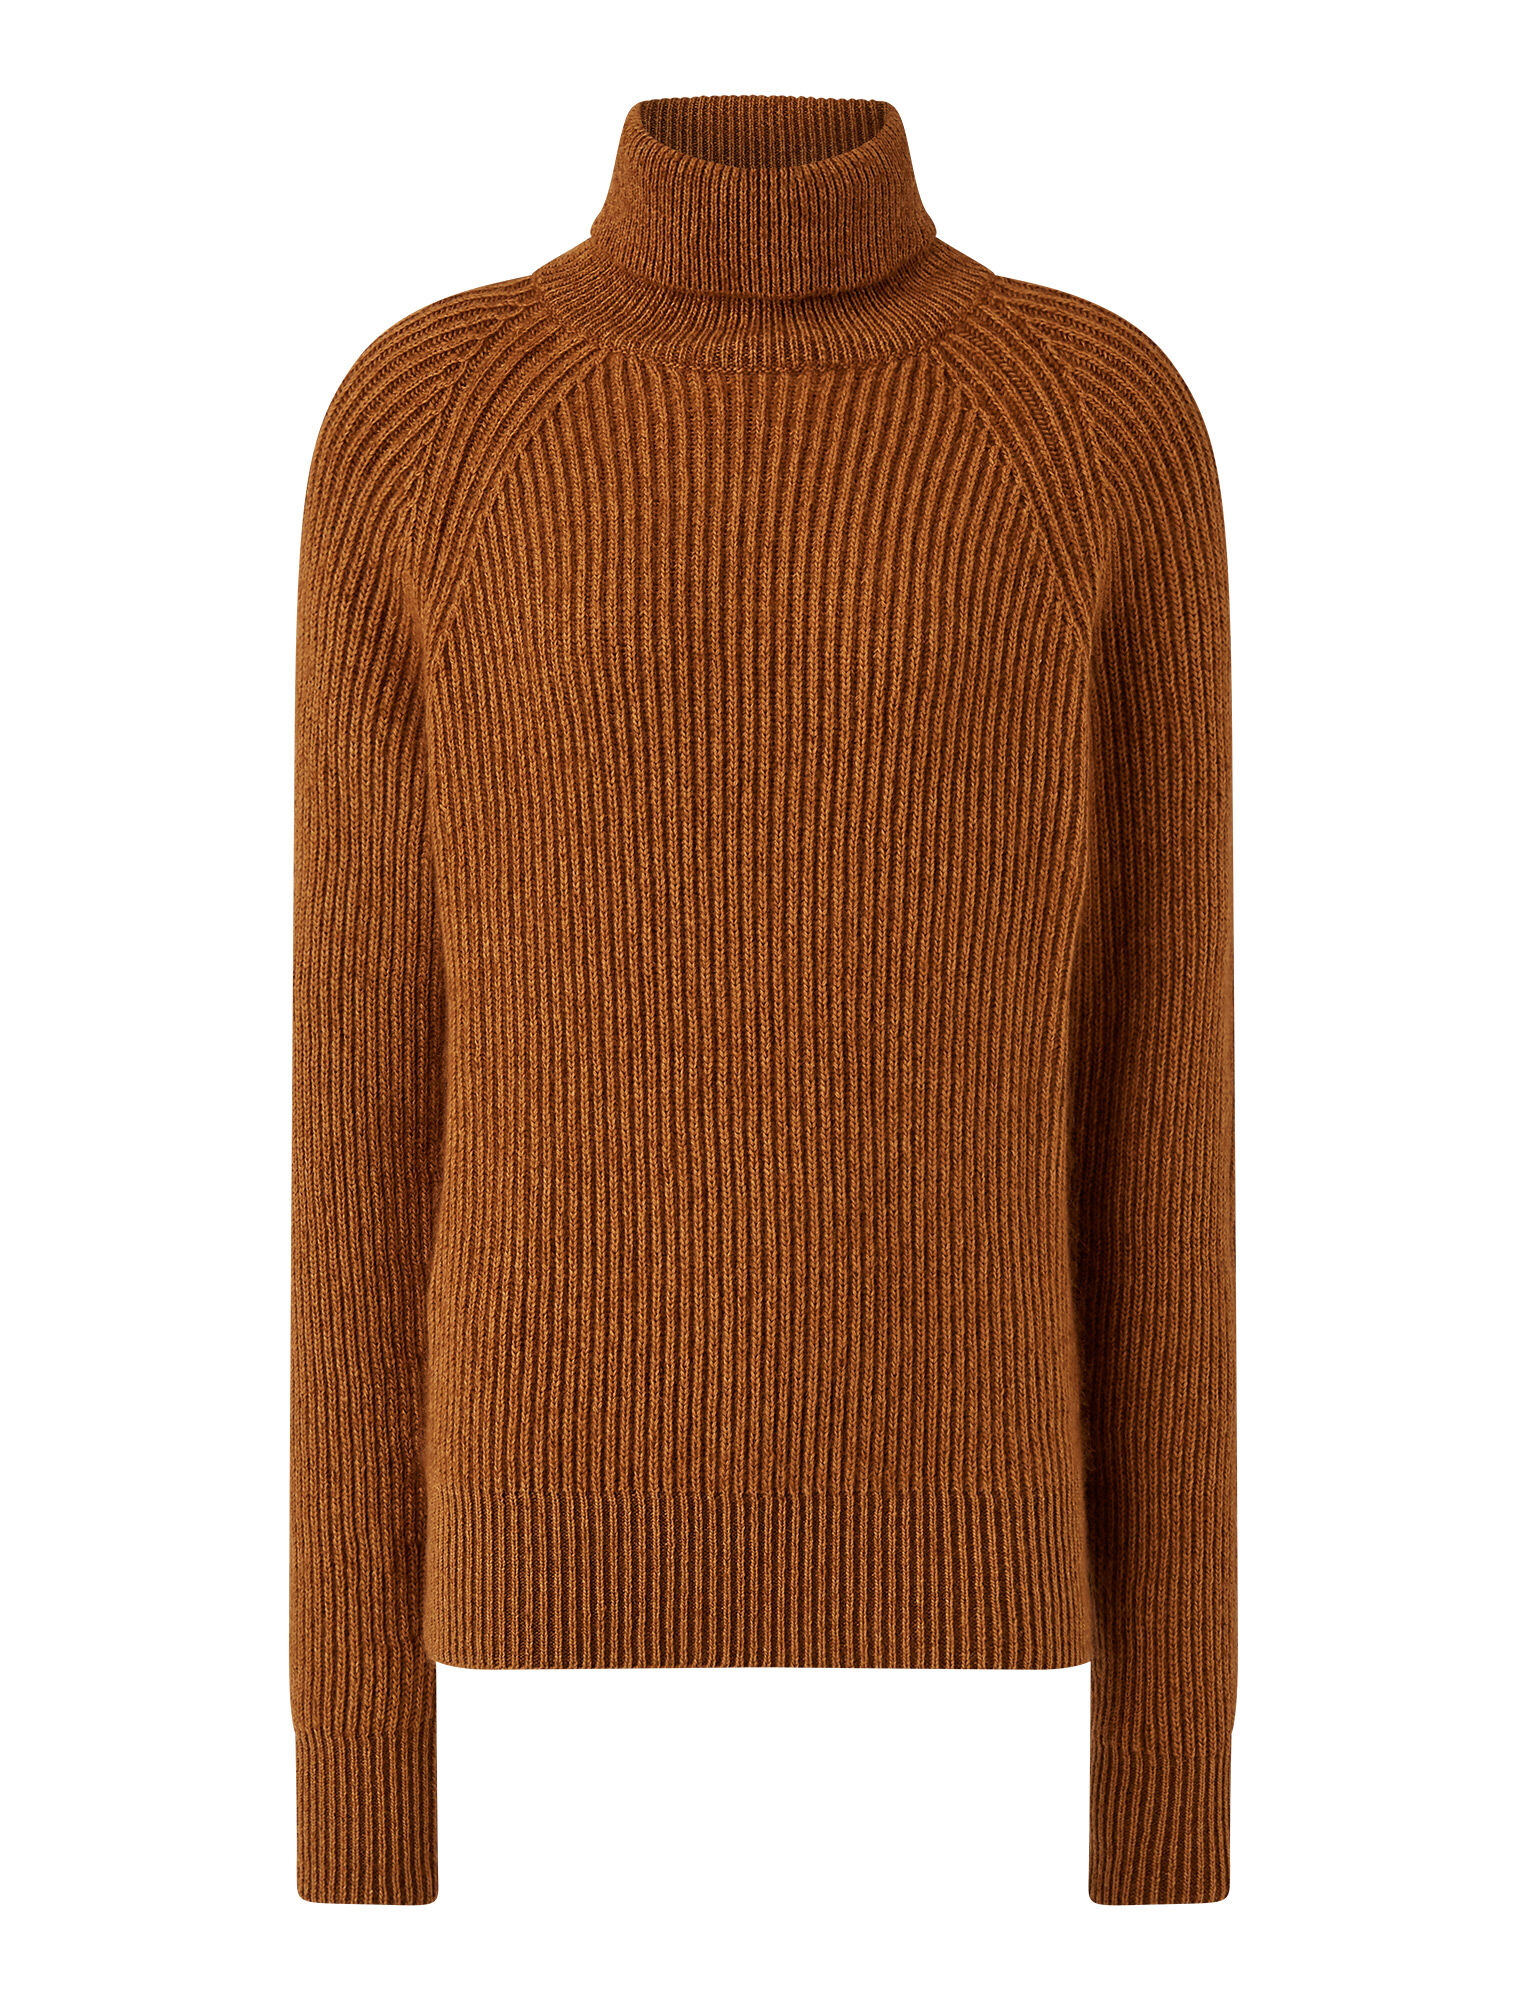 Joseph, High Neck Cote Anglaise Novelty Knit, in Camel